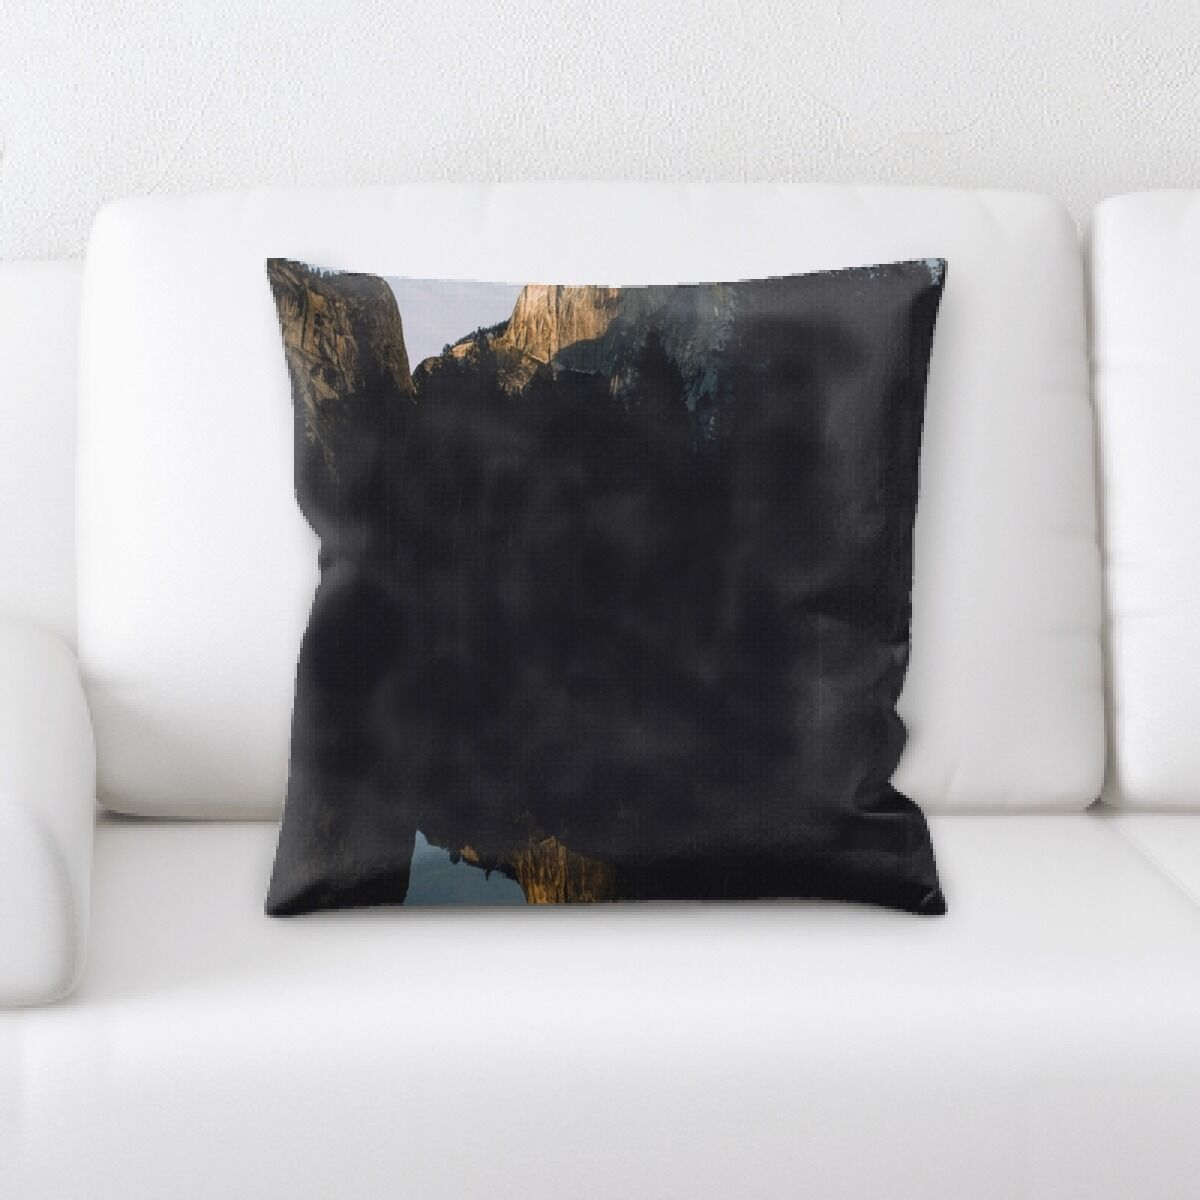 Mattingly Mountain and Cliffs (158) Throw Pillow